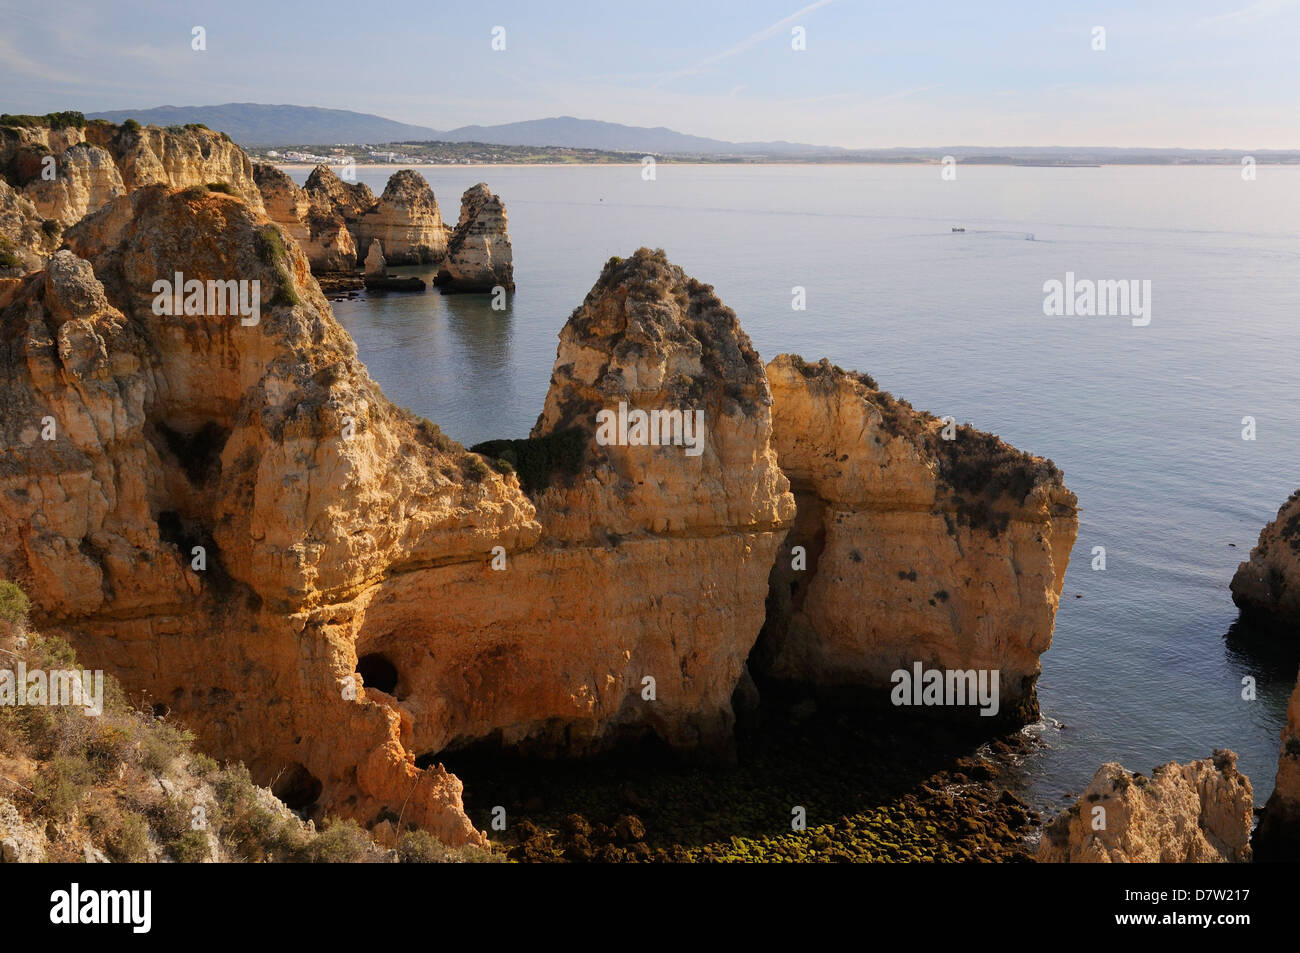 Weathered sandstone cliffs and sea stacks at Ponta da Piedade, Lagos, Algarve, Portugal - Stock Image